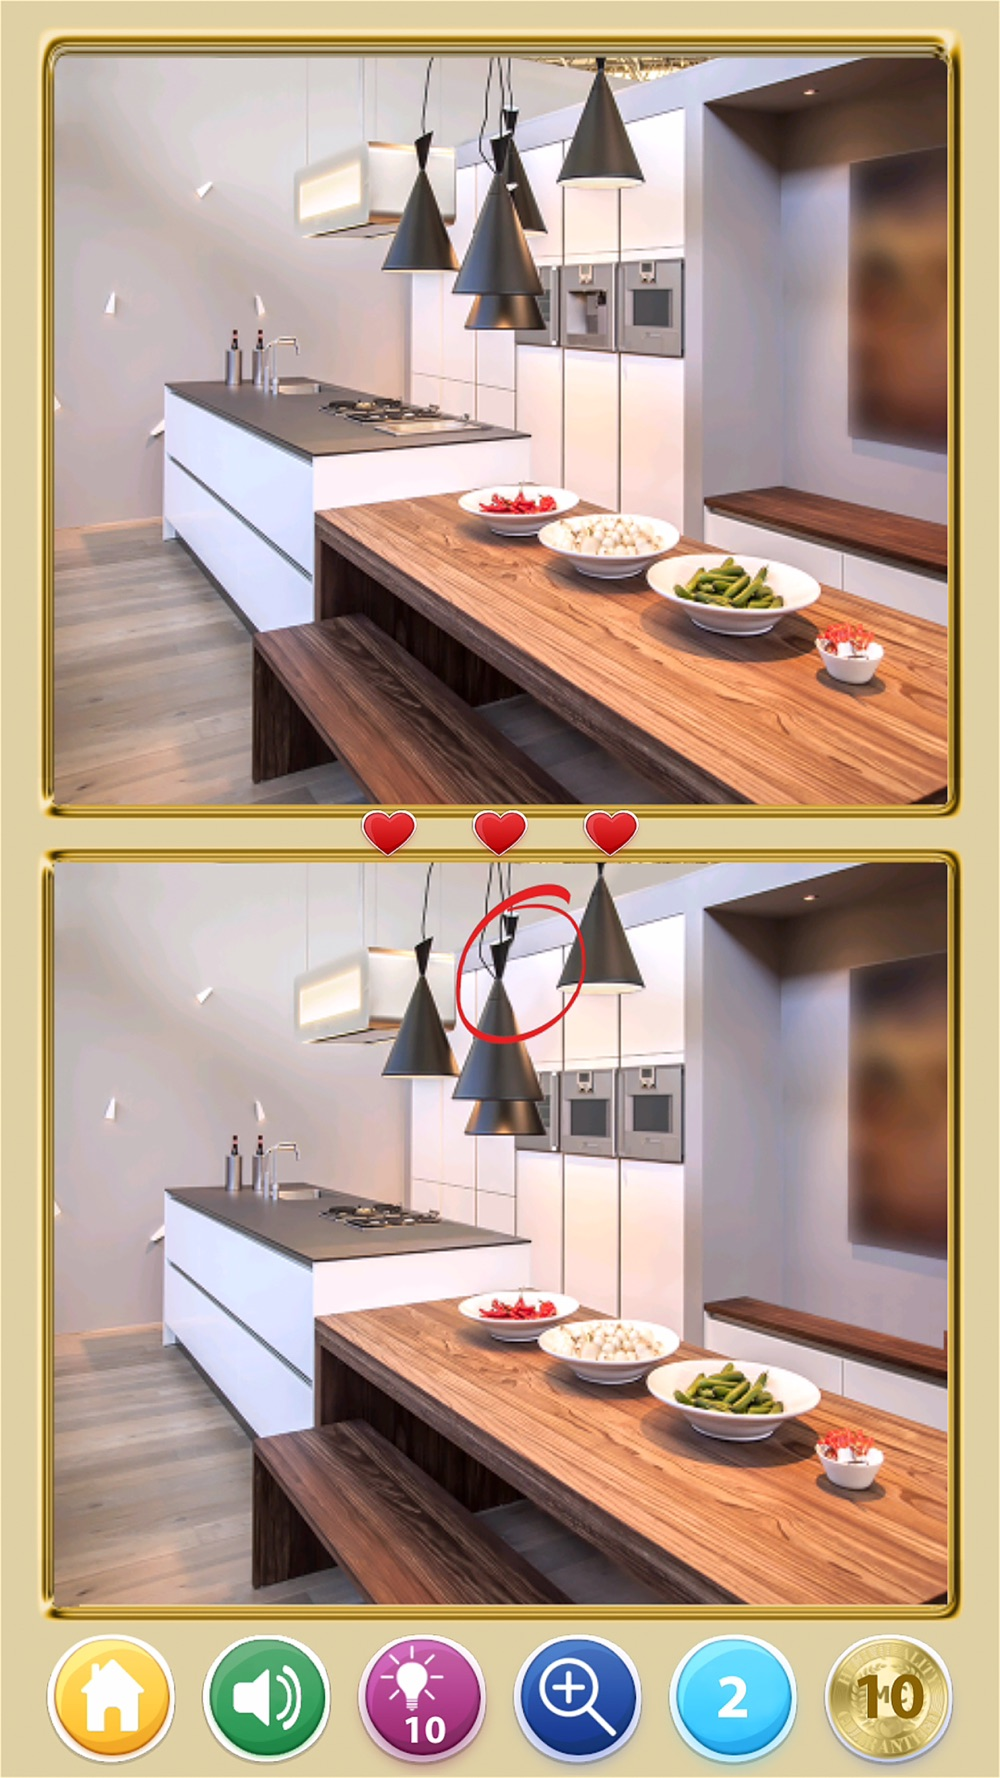 Find The Difference! Rooms HD hack tool